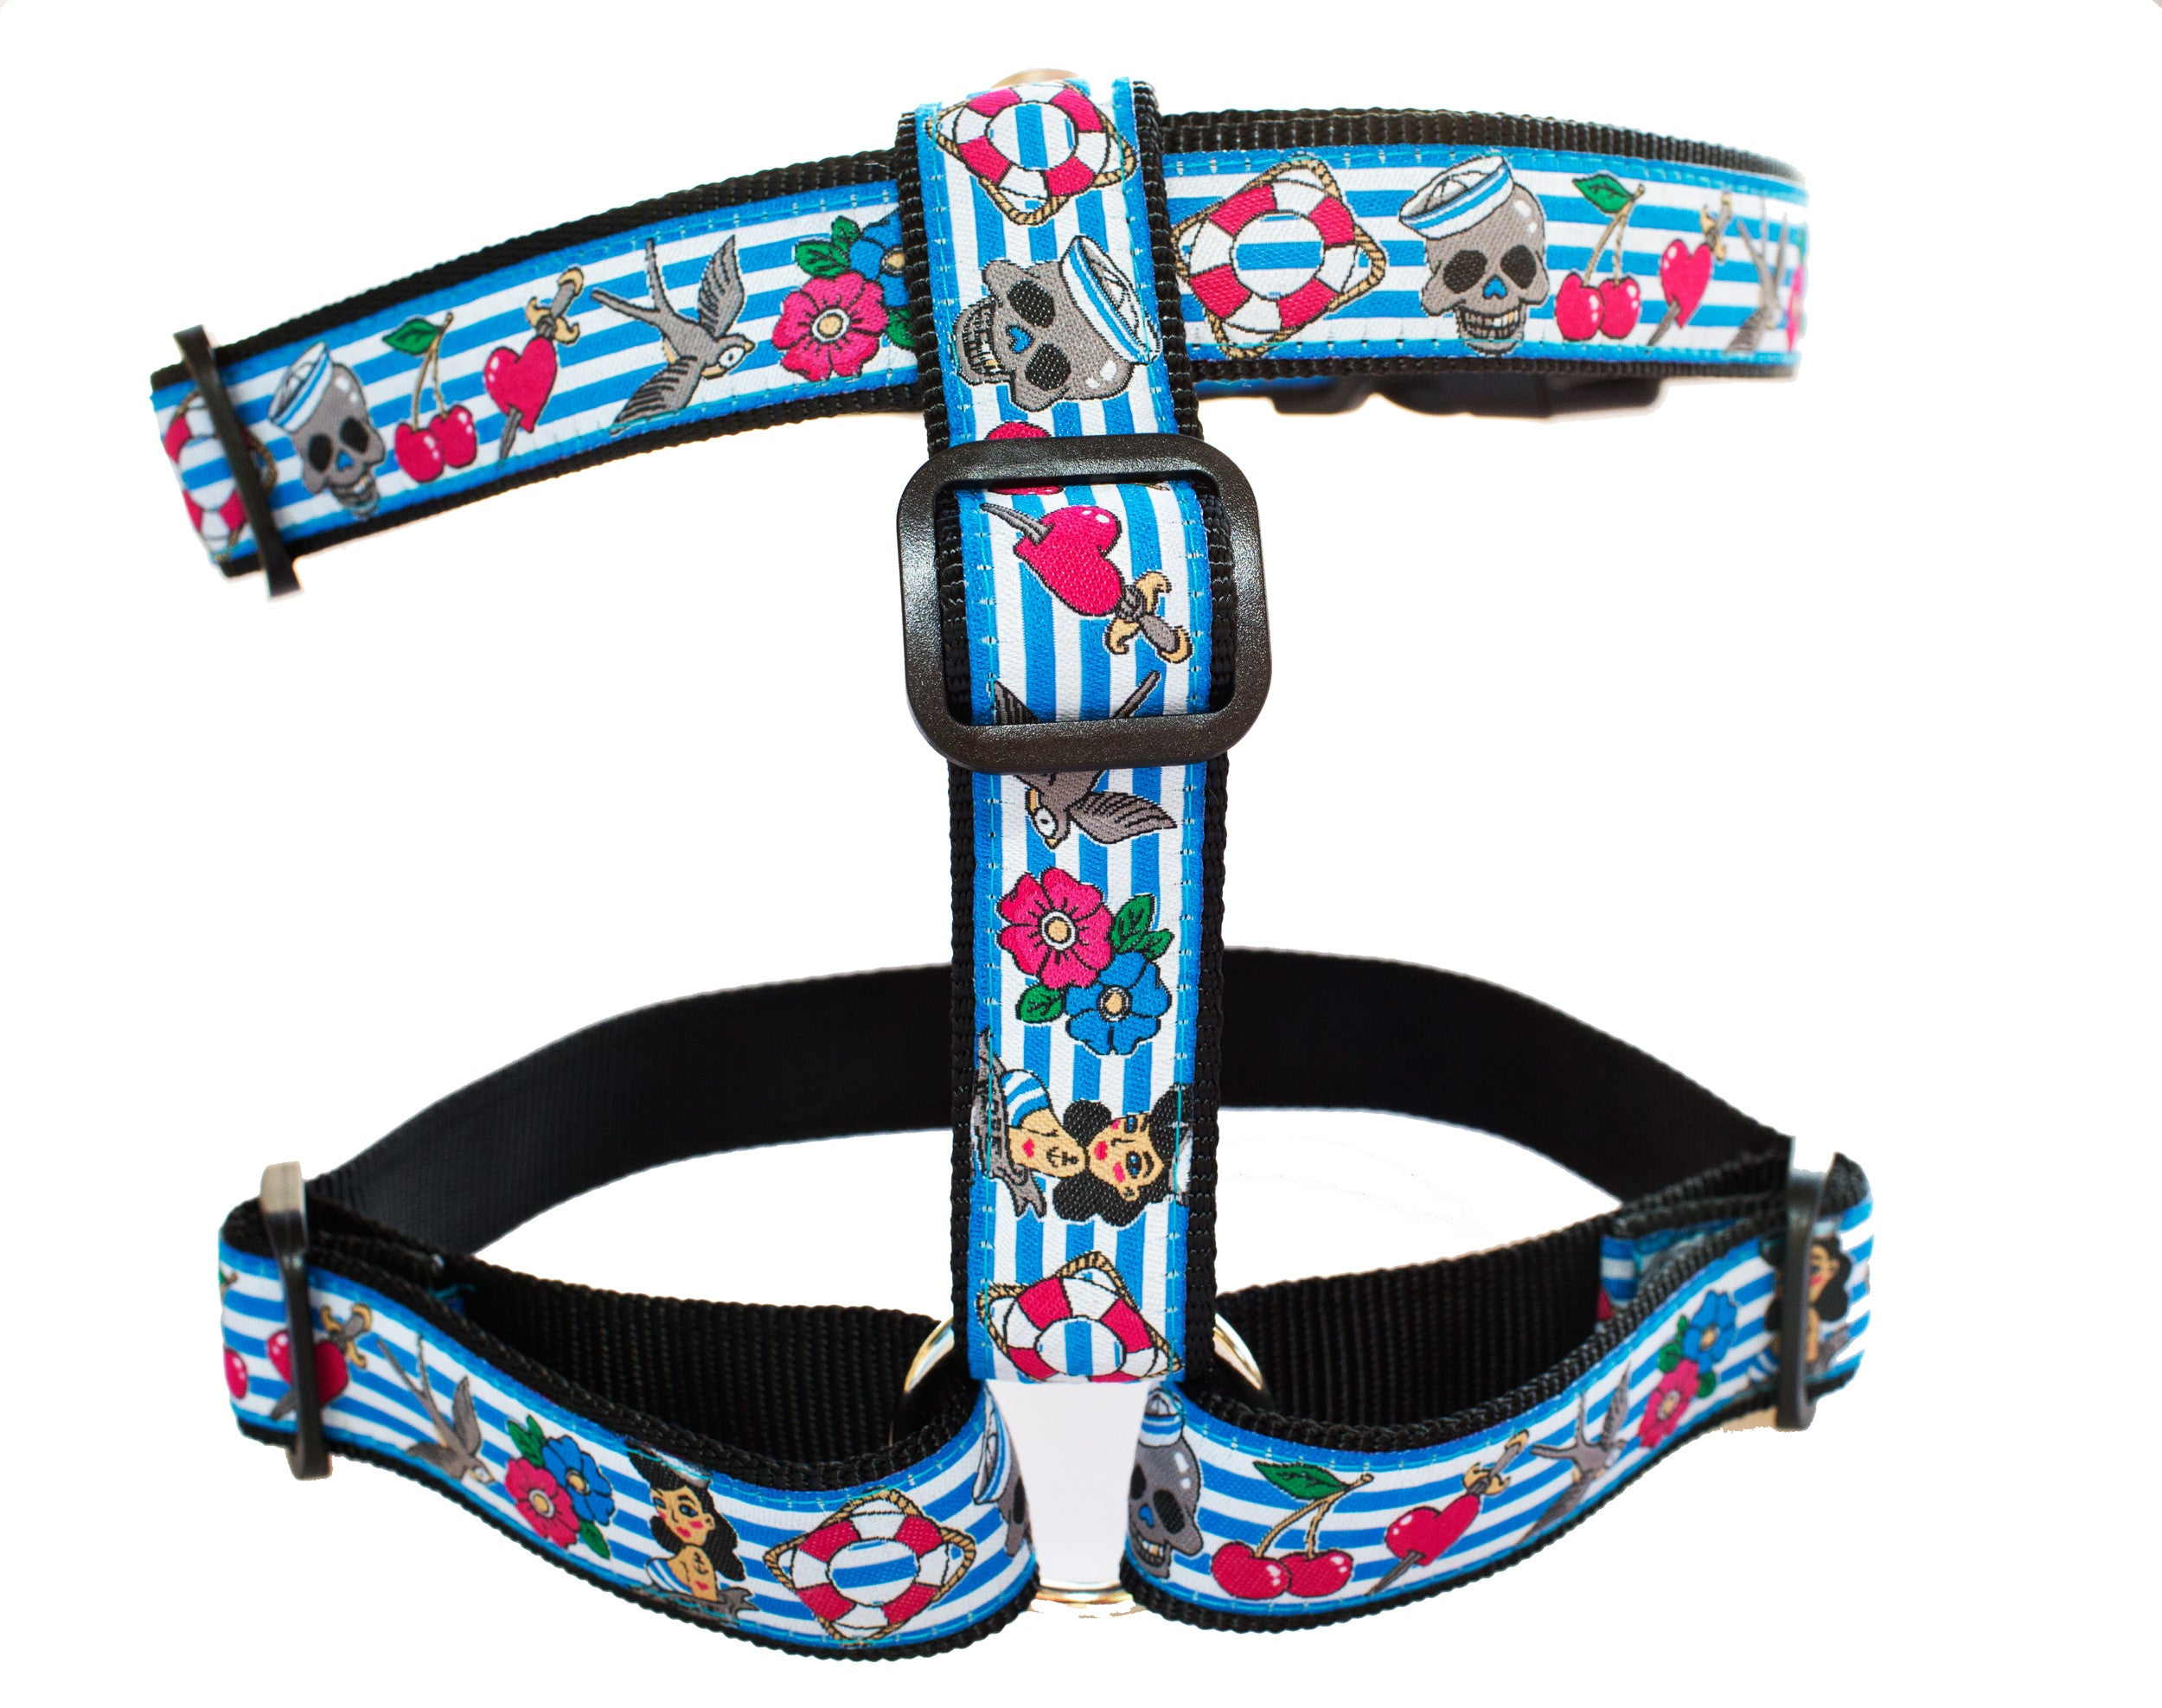 Girl Rockabilly Harness  / Dog Harness / H-Harness for Dogs